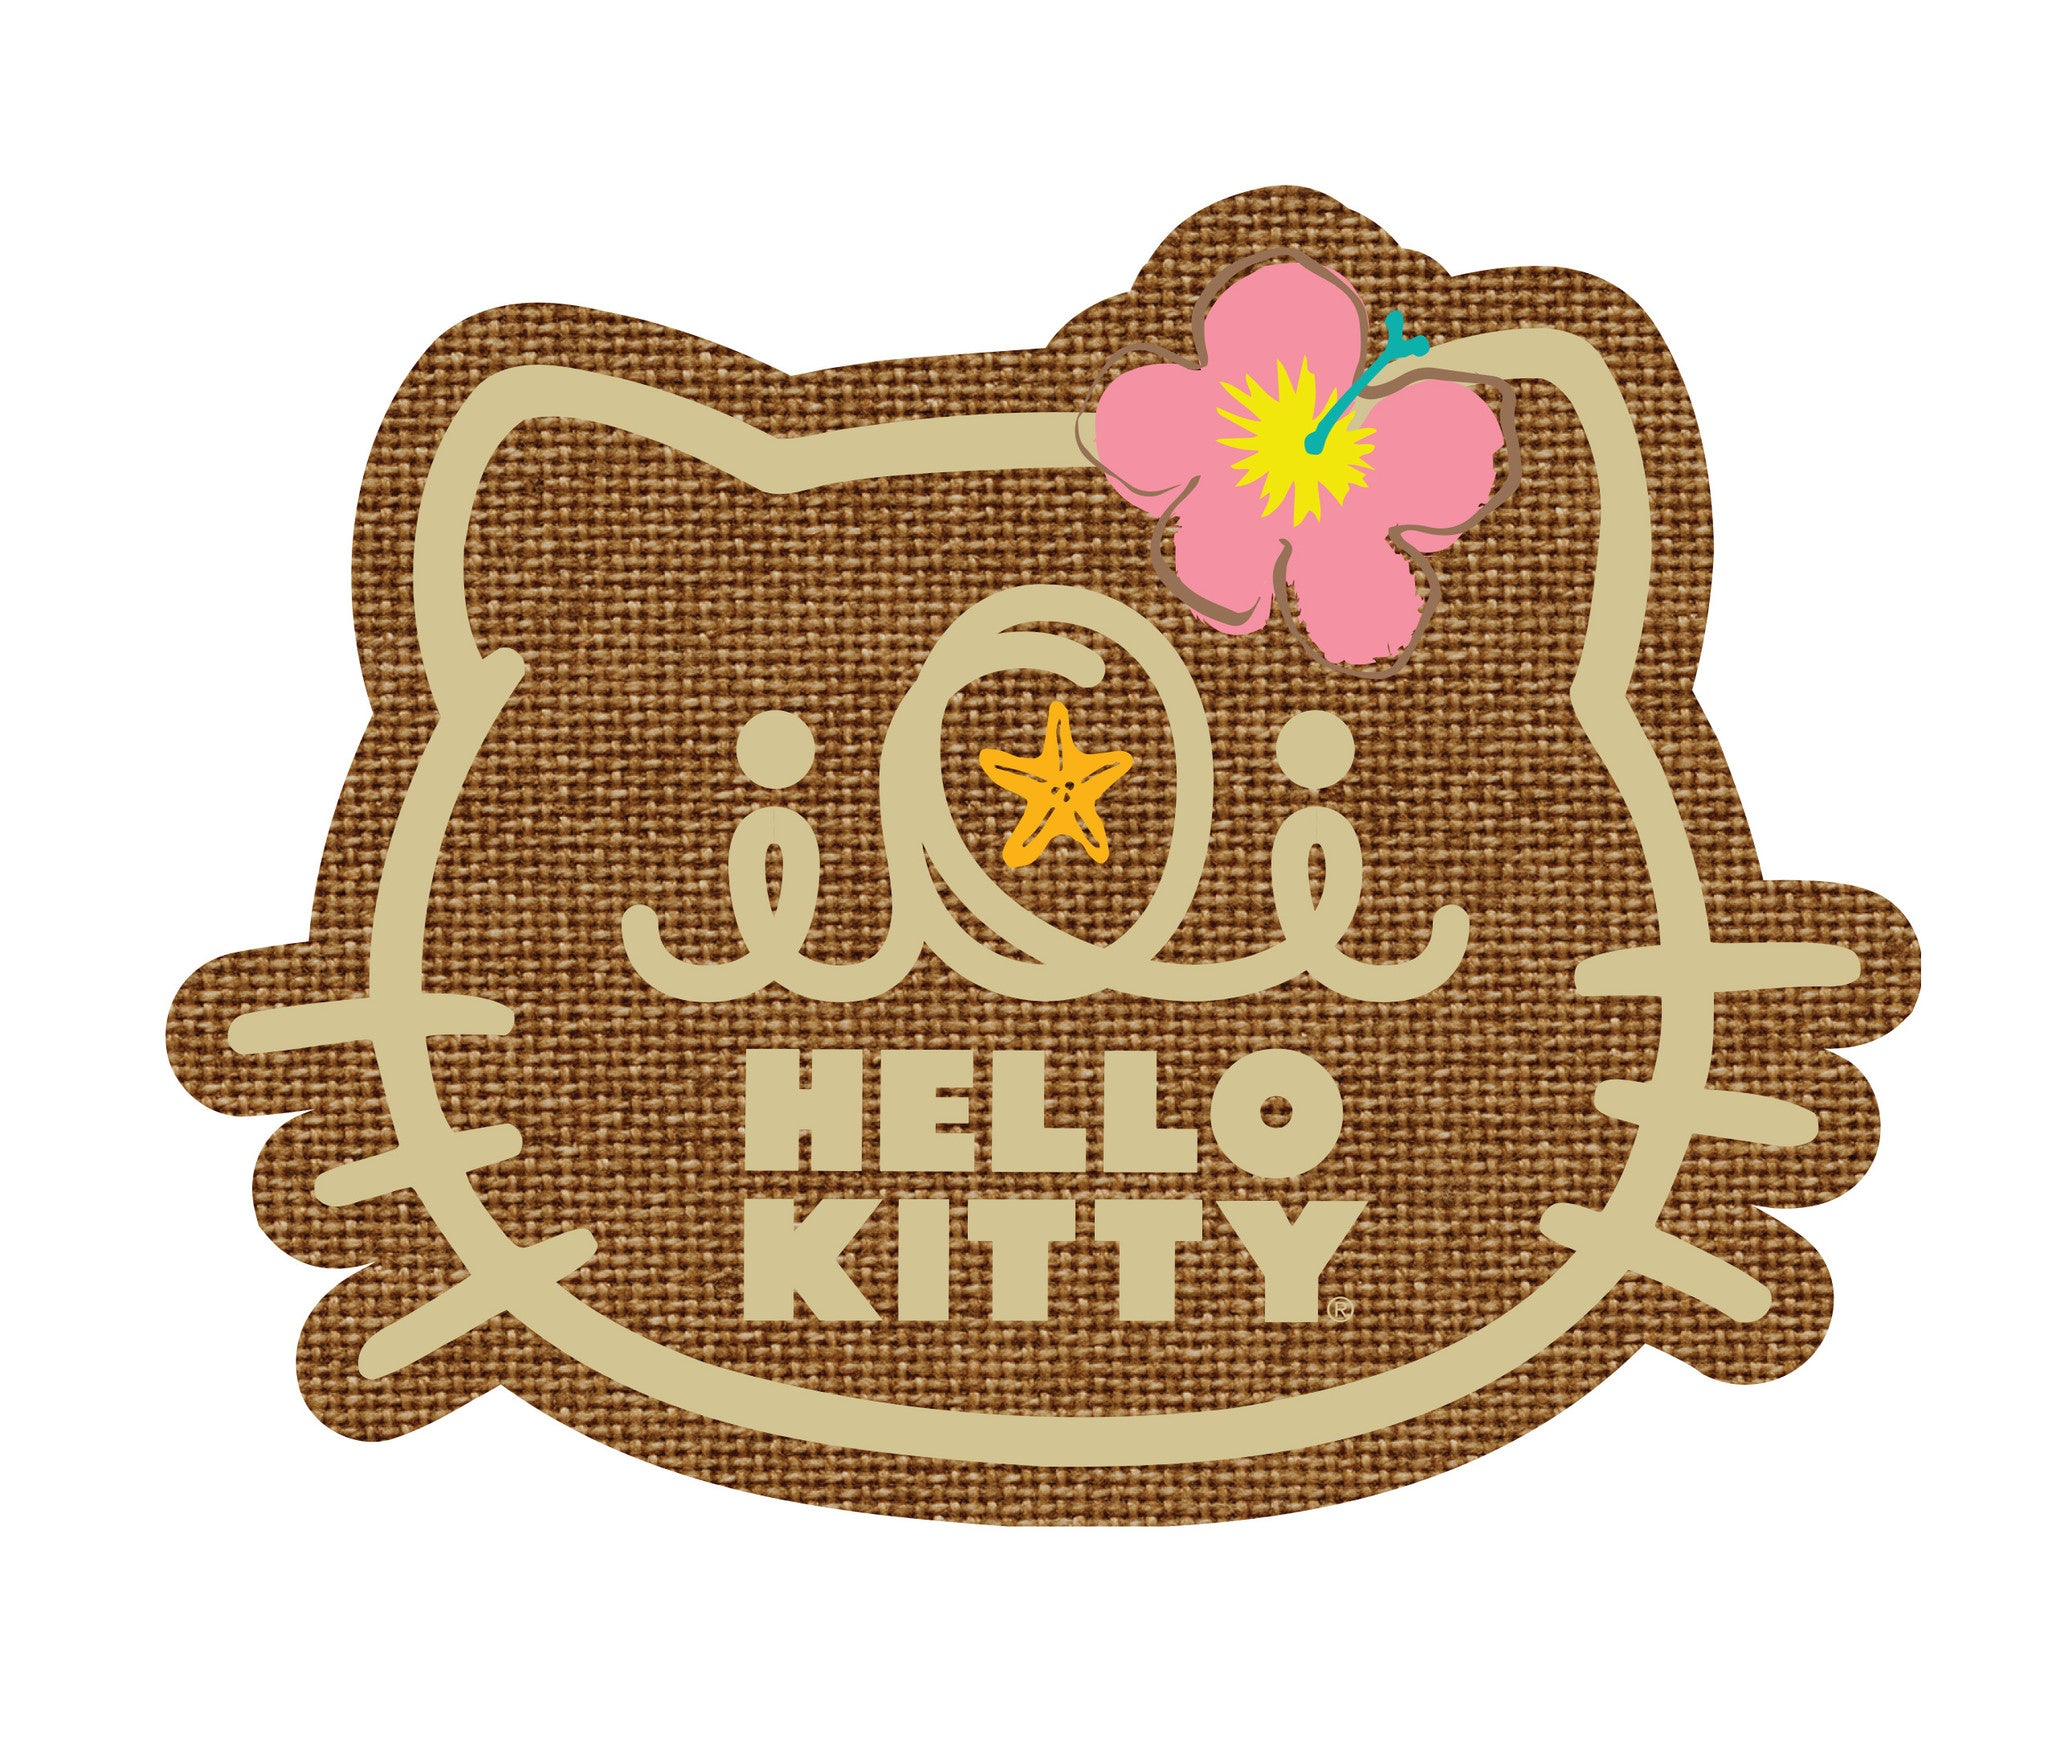 'IOLANI x HELLO KITTY 2017